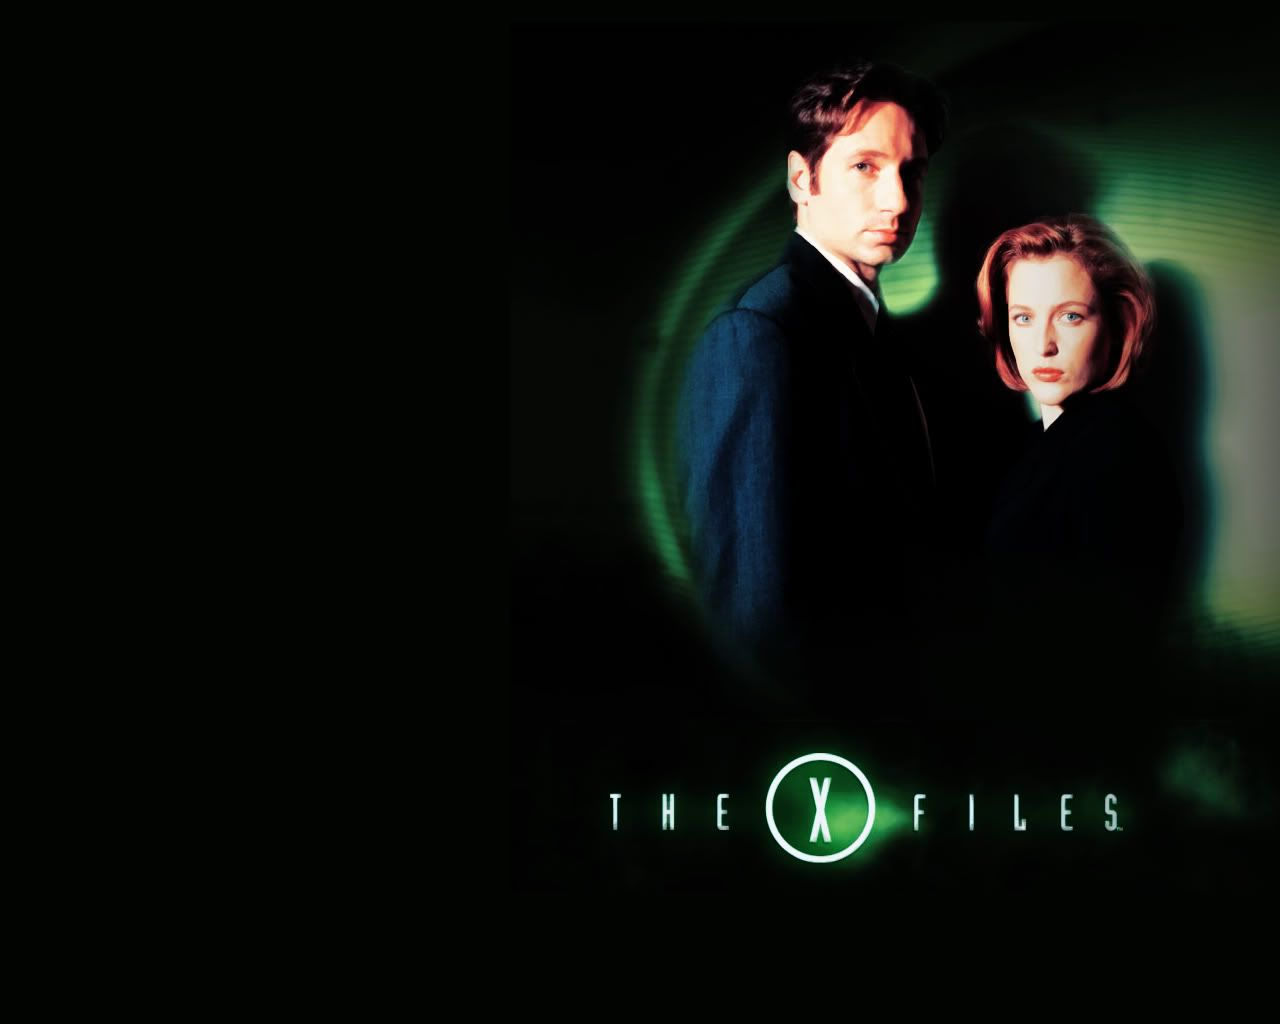 The X Files Wallpaper Mulder and Scully TV Fanart Wallpapers 1280x1024